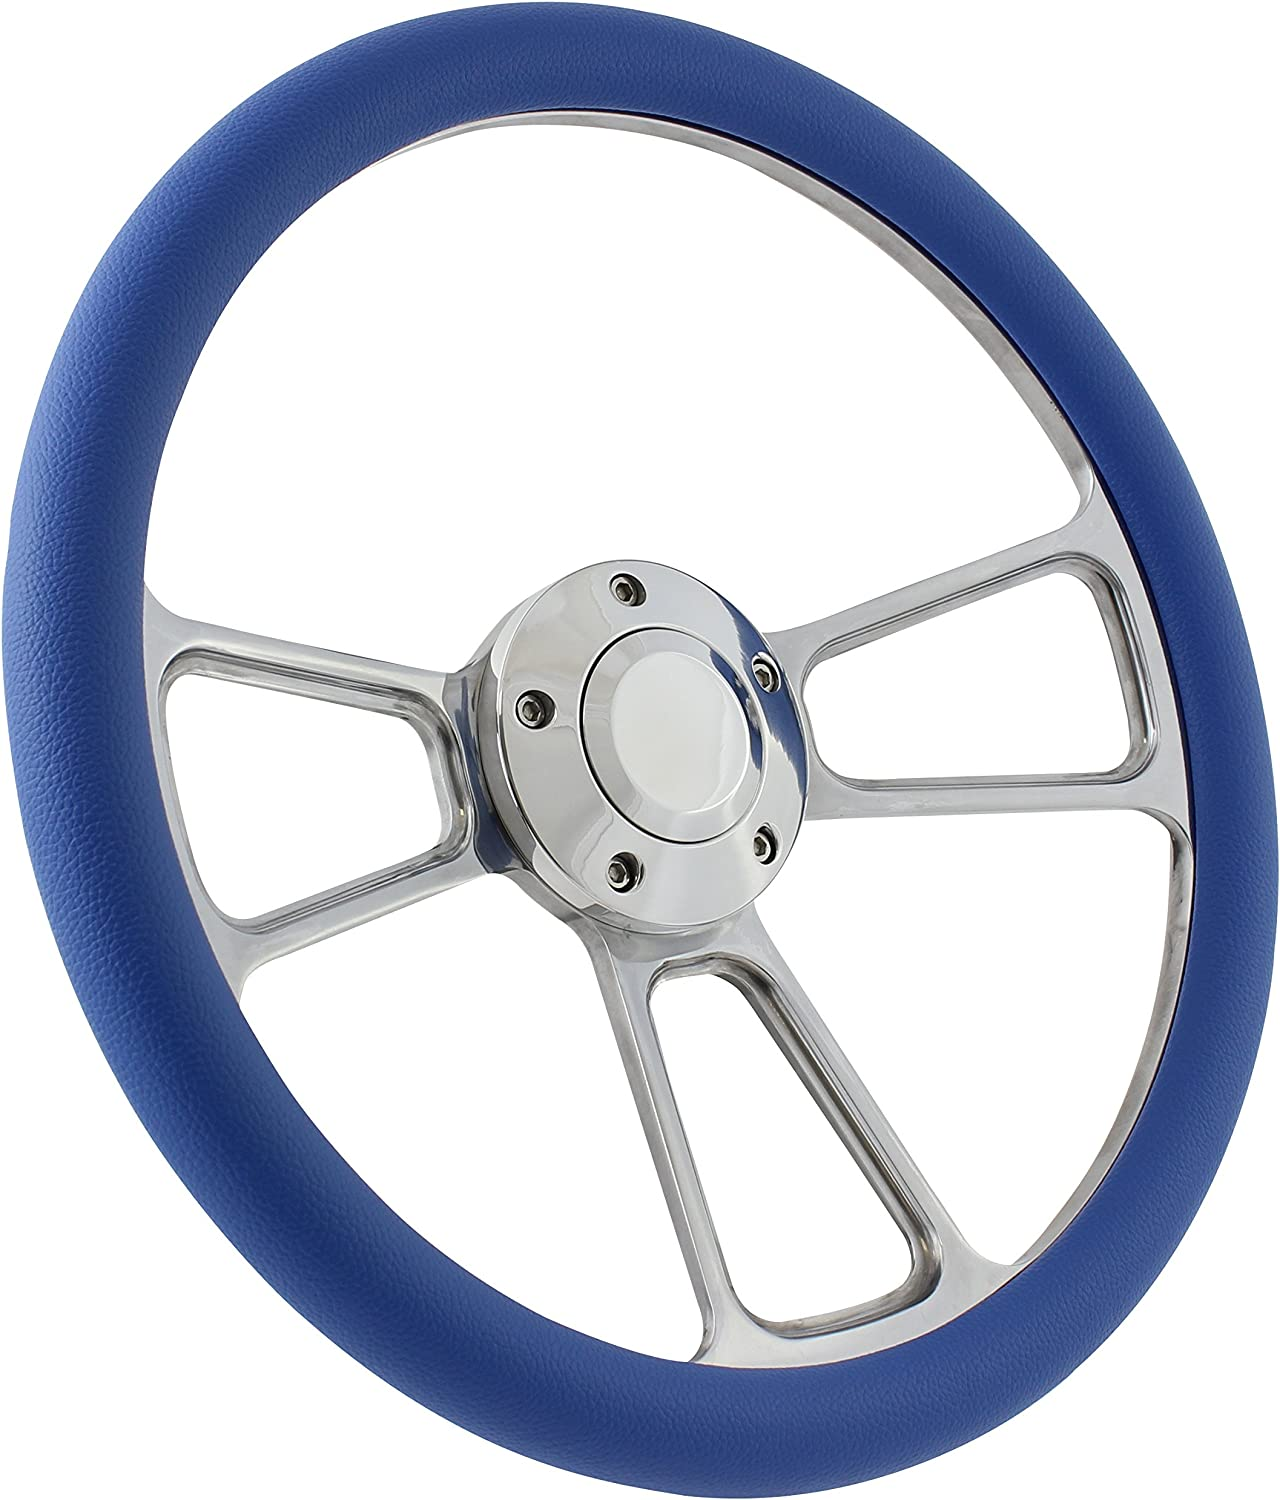 5-bolt Steering Wheel 14 Inch Aluminum with Black Wrap and Horn